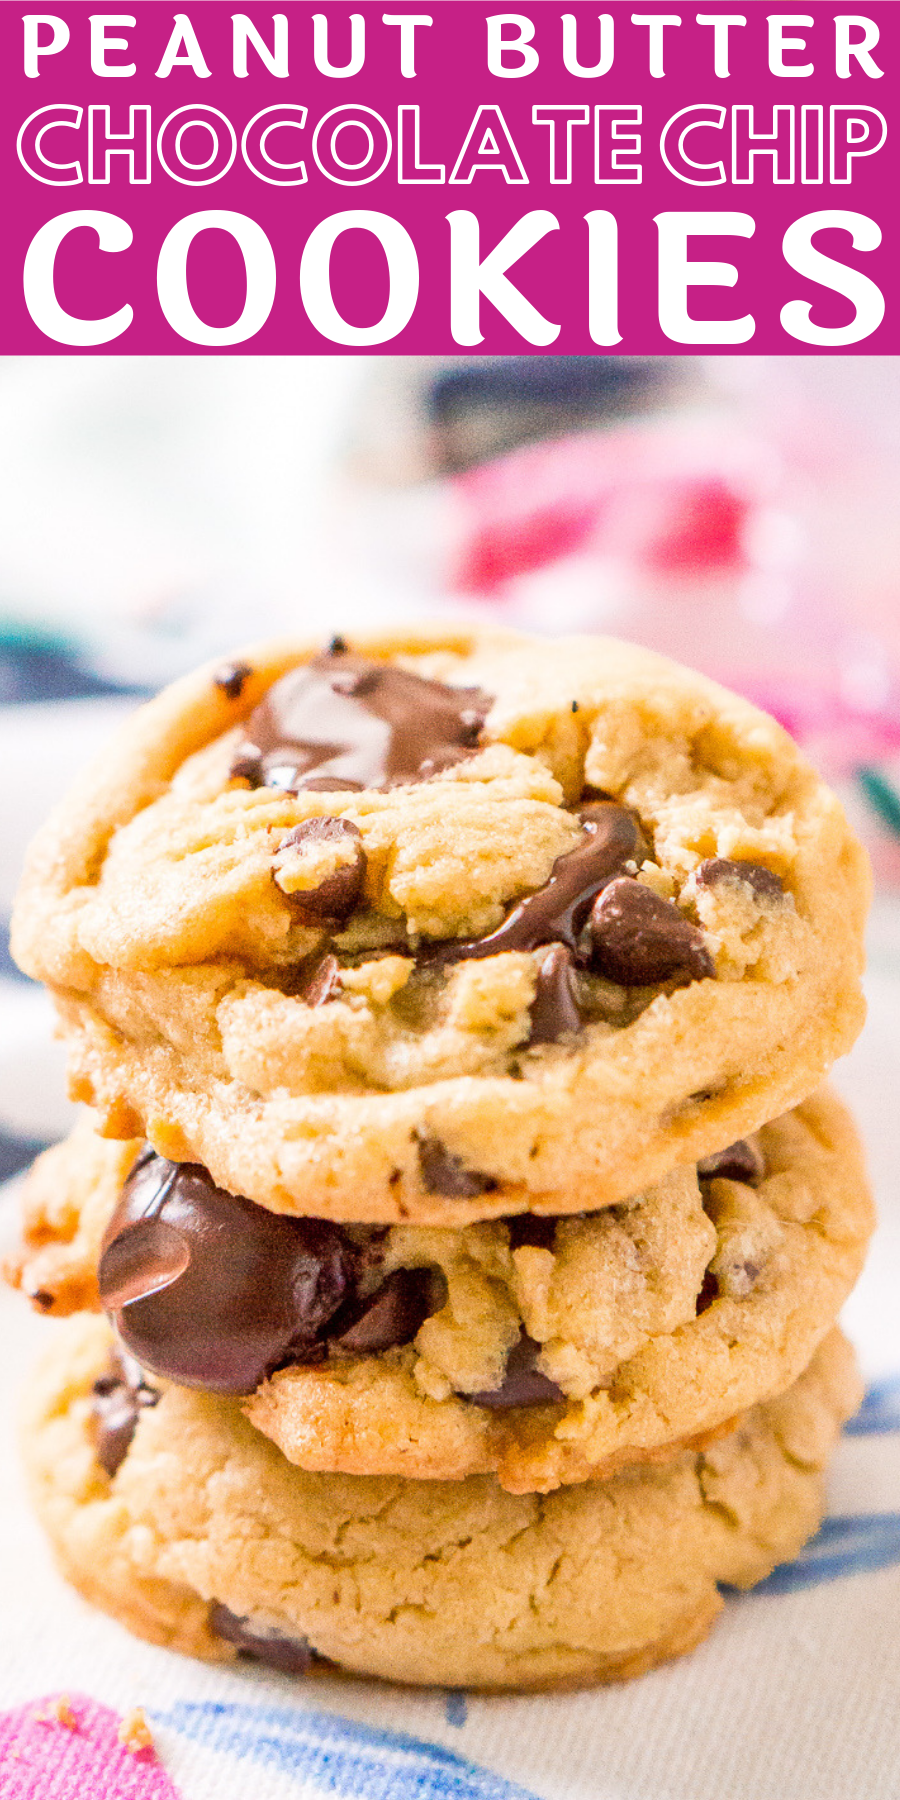 These Peanut Butter Chocolate Chip Cookies are soft and chewy and loaded with sweet, delicious flavors the whole family will love!